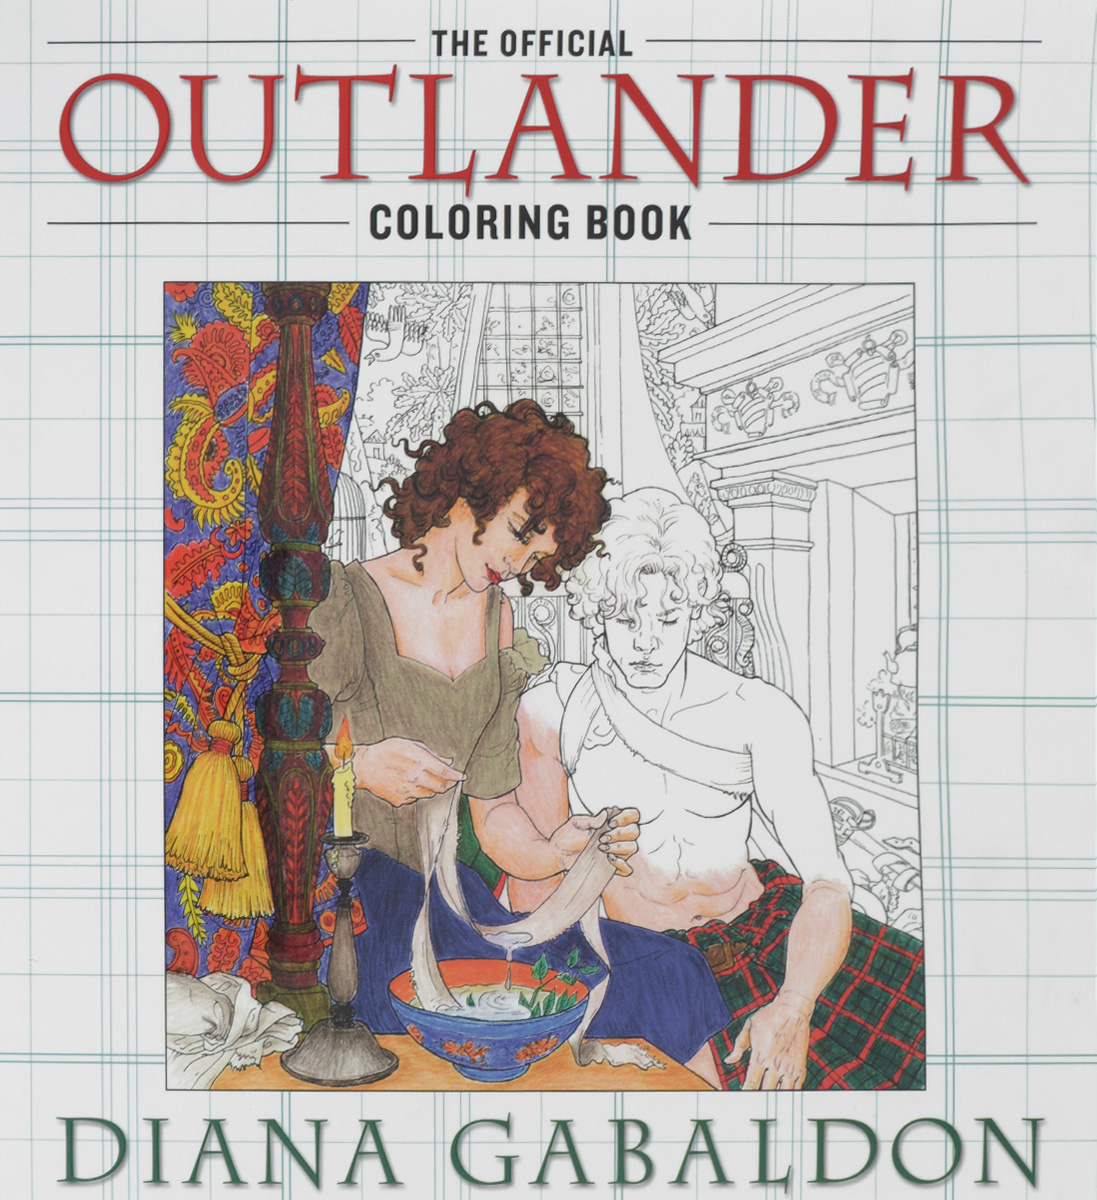 The Official Outlander: Coloring Book #1